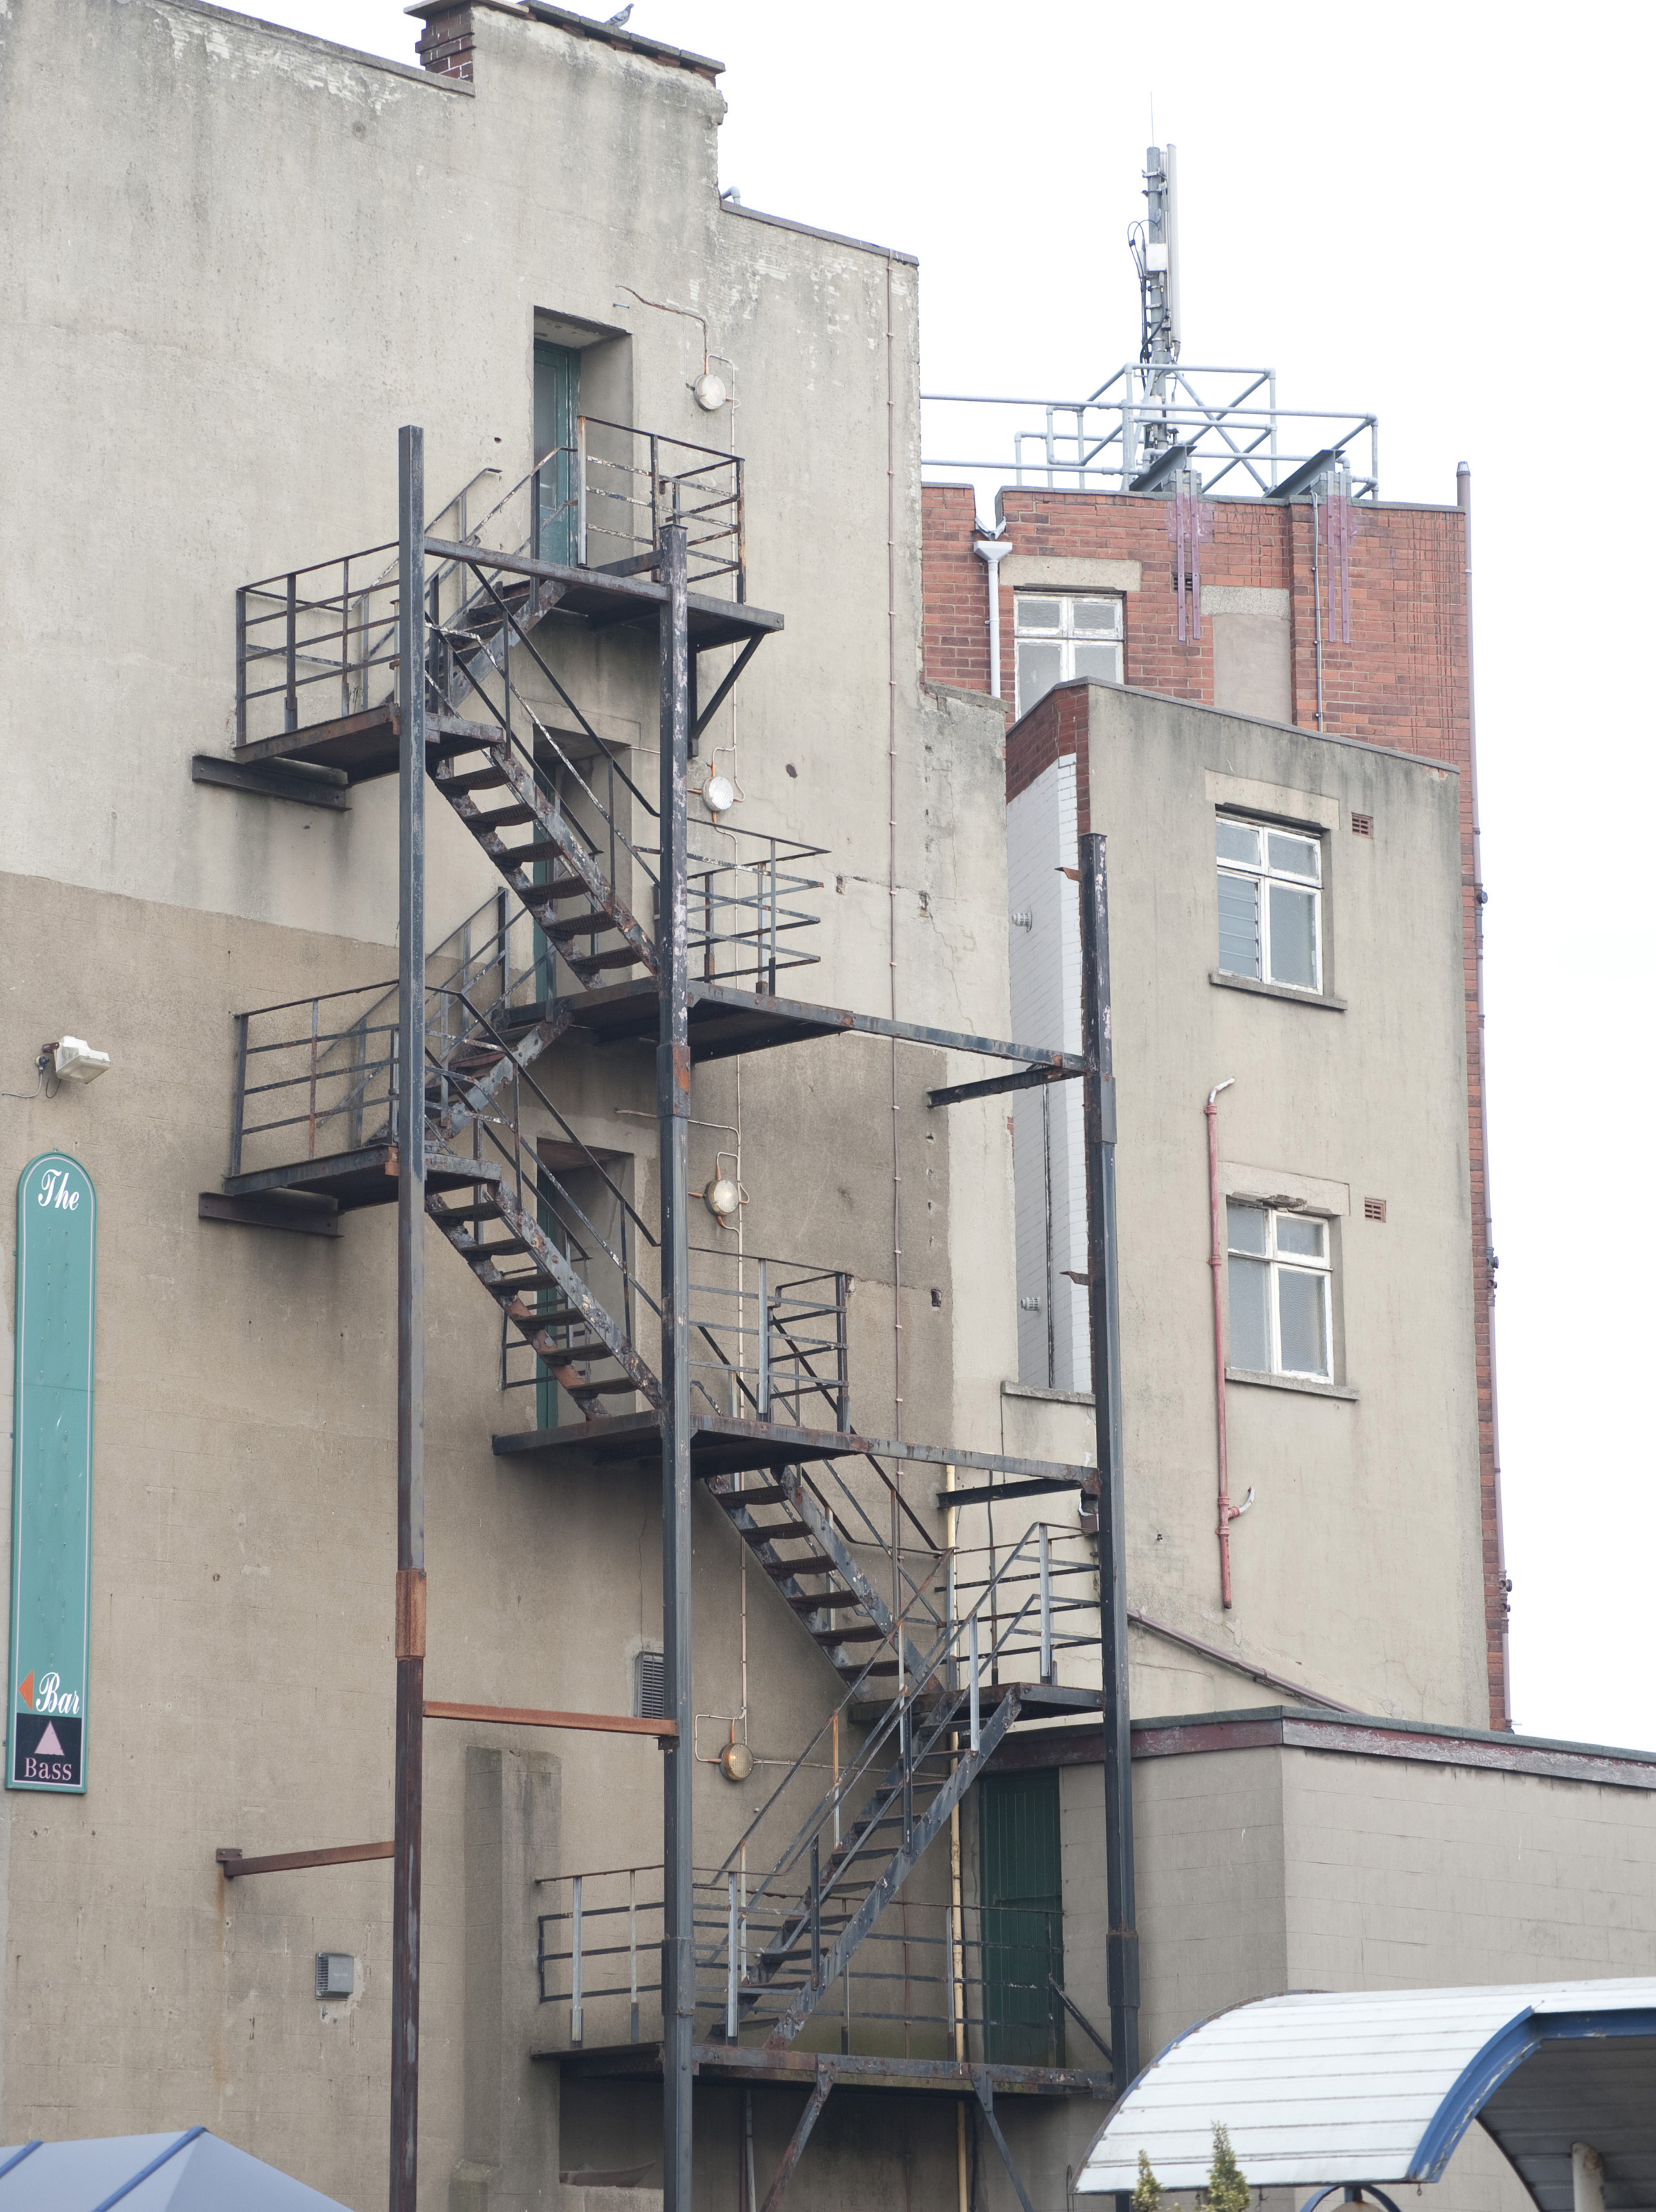 Metal Fire Escape On The Outside Wall Of An Urban Building Providing An Emergency  Exit In